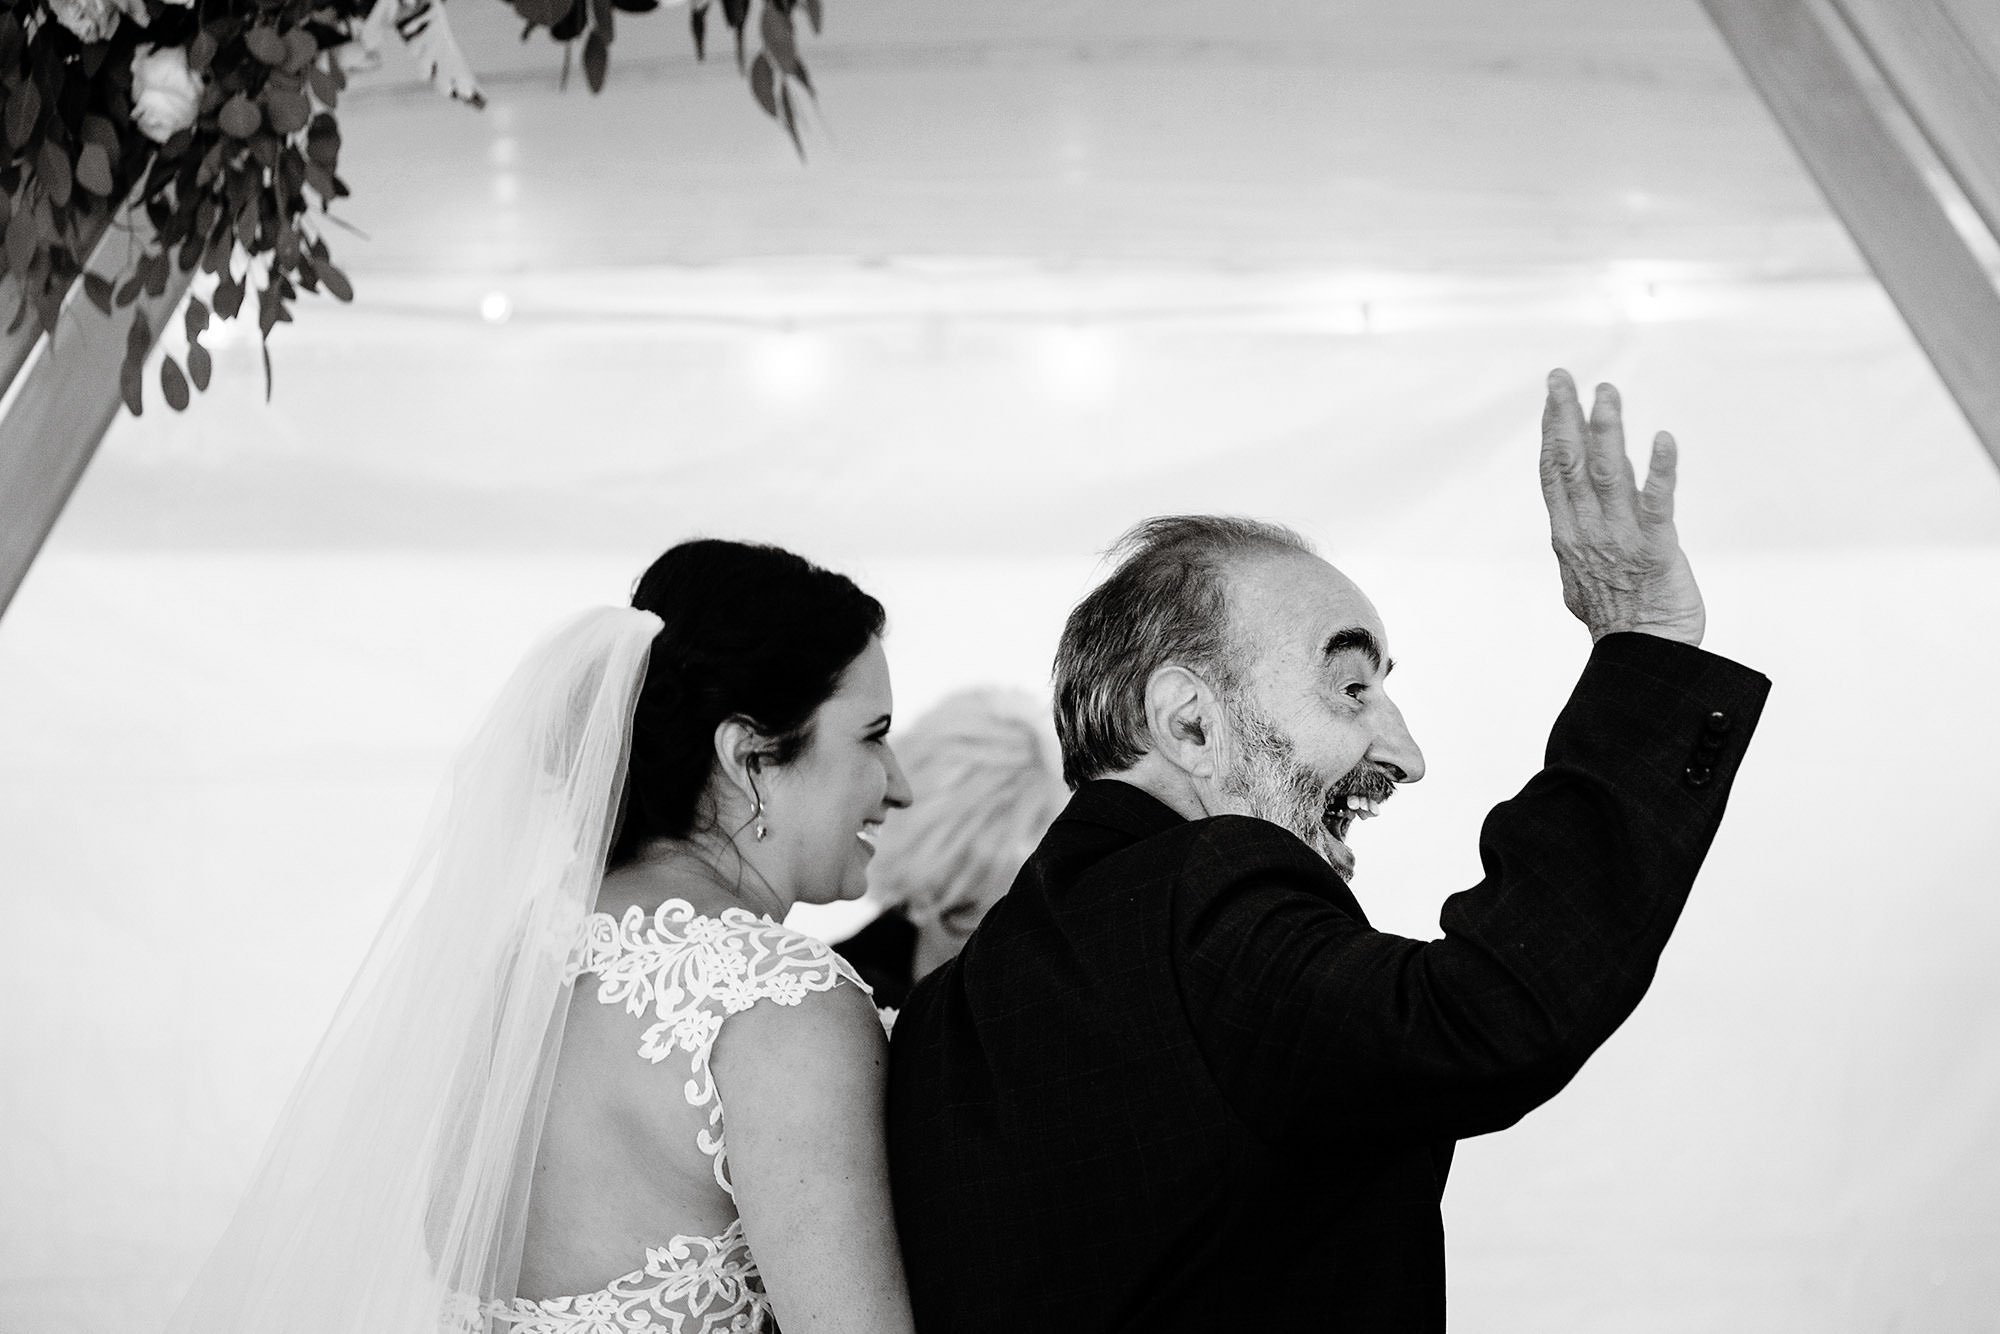 The father of the bride waves to guests during the wedding ceremony at Pelham House Resort.